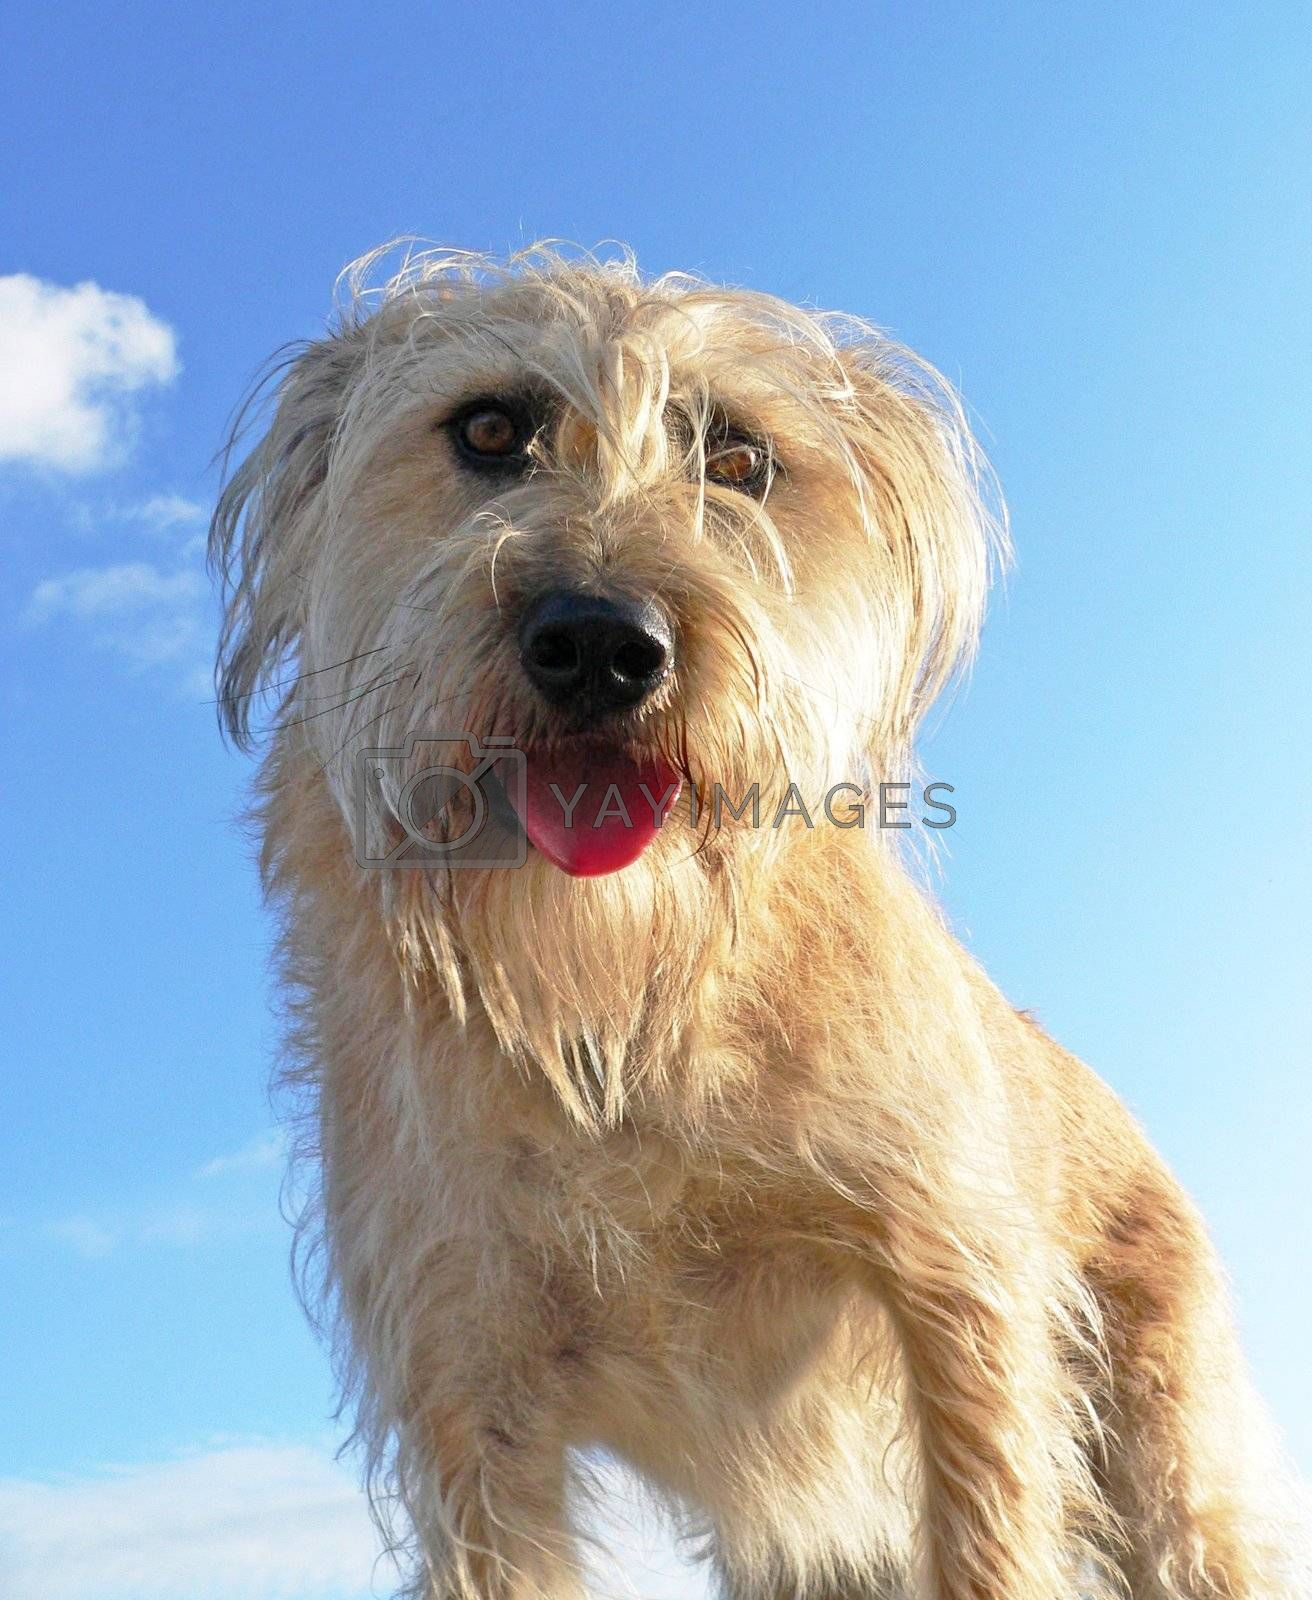 Young fluffy dog on blue sky background